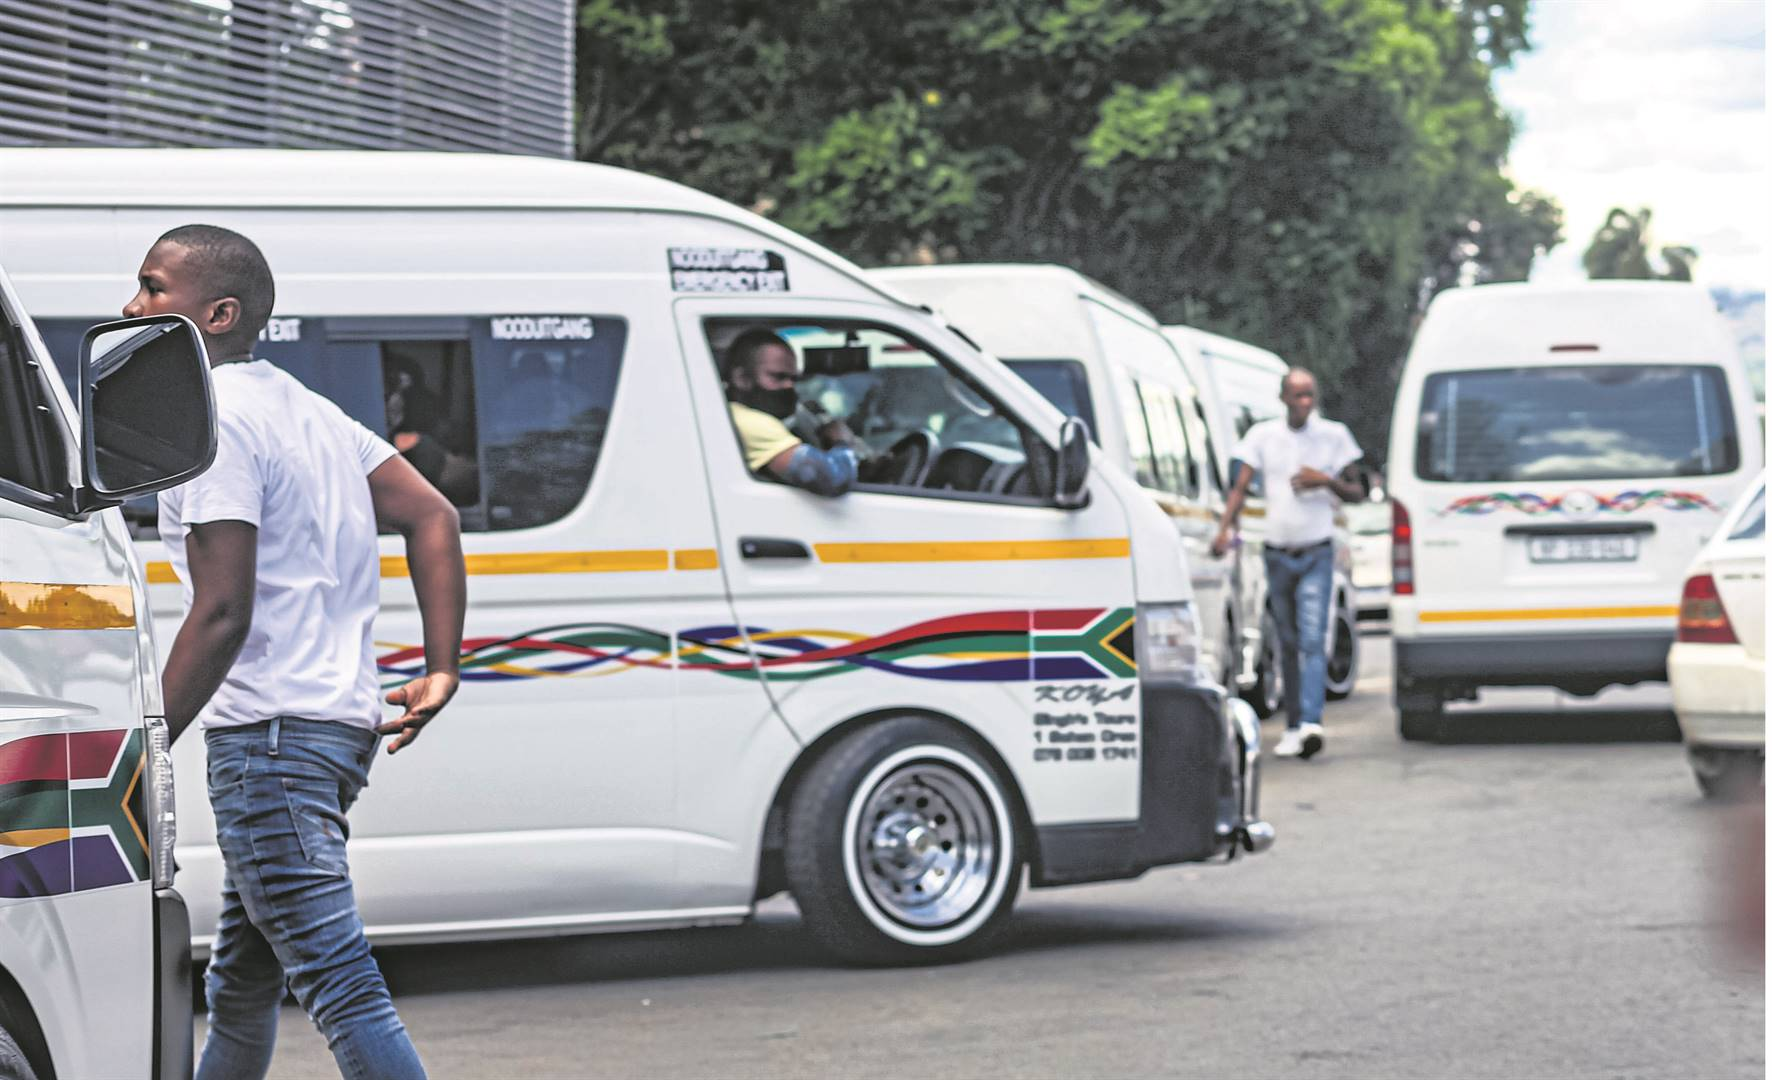 The most recent incident of taxi violence in Cape Town happened on Wednesday.